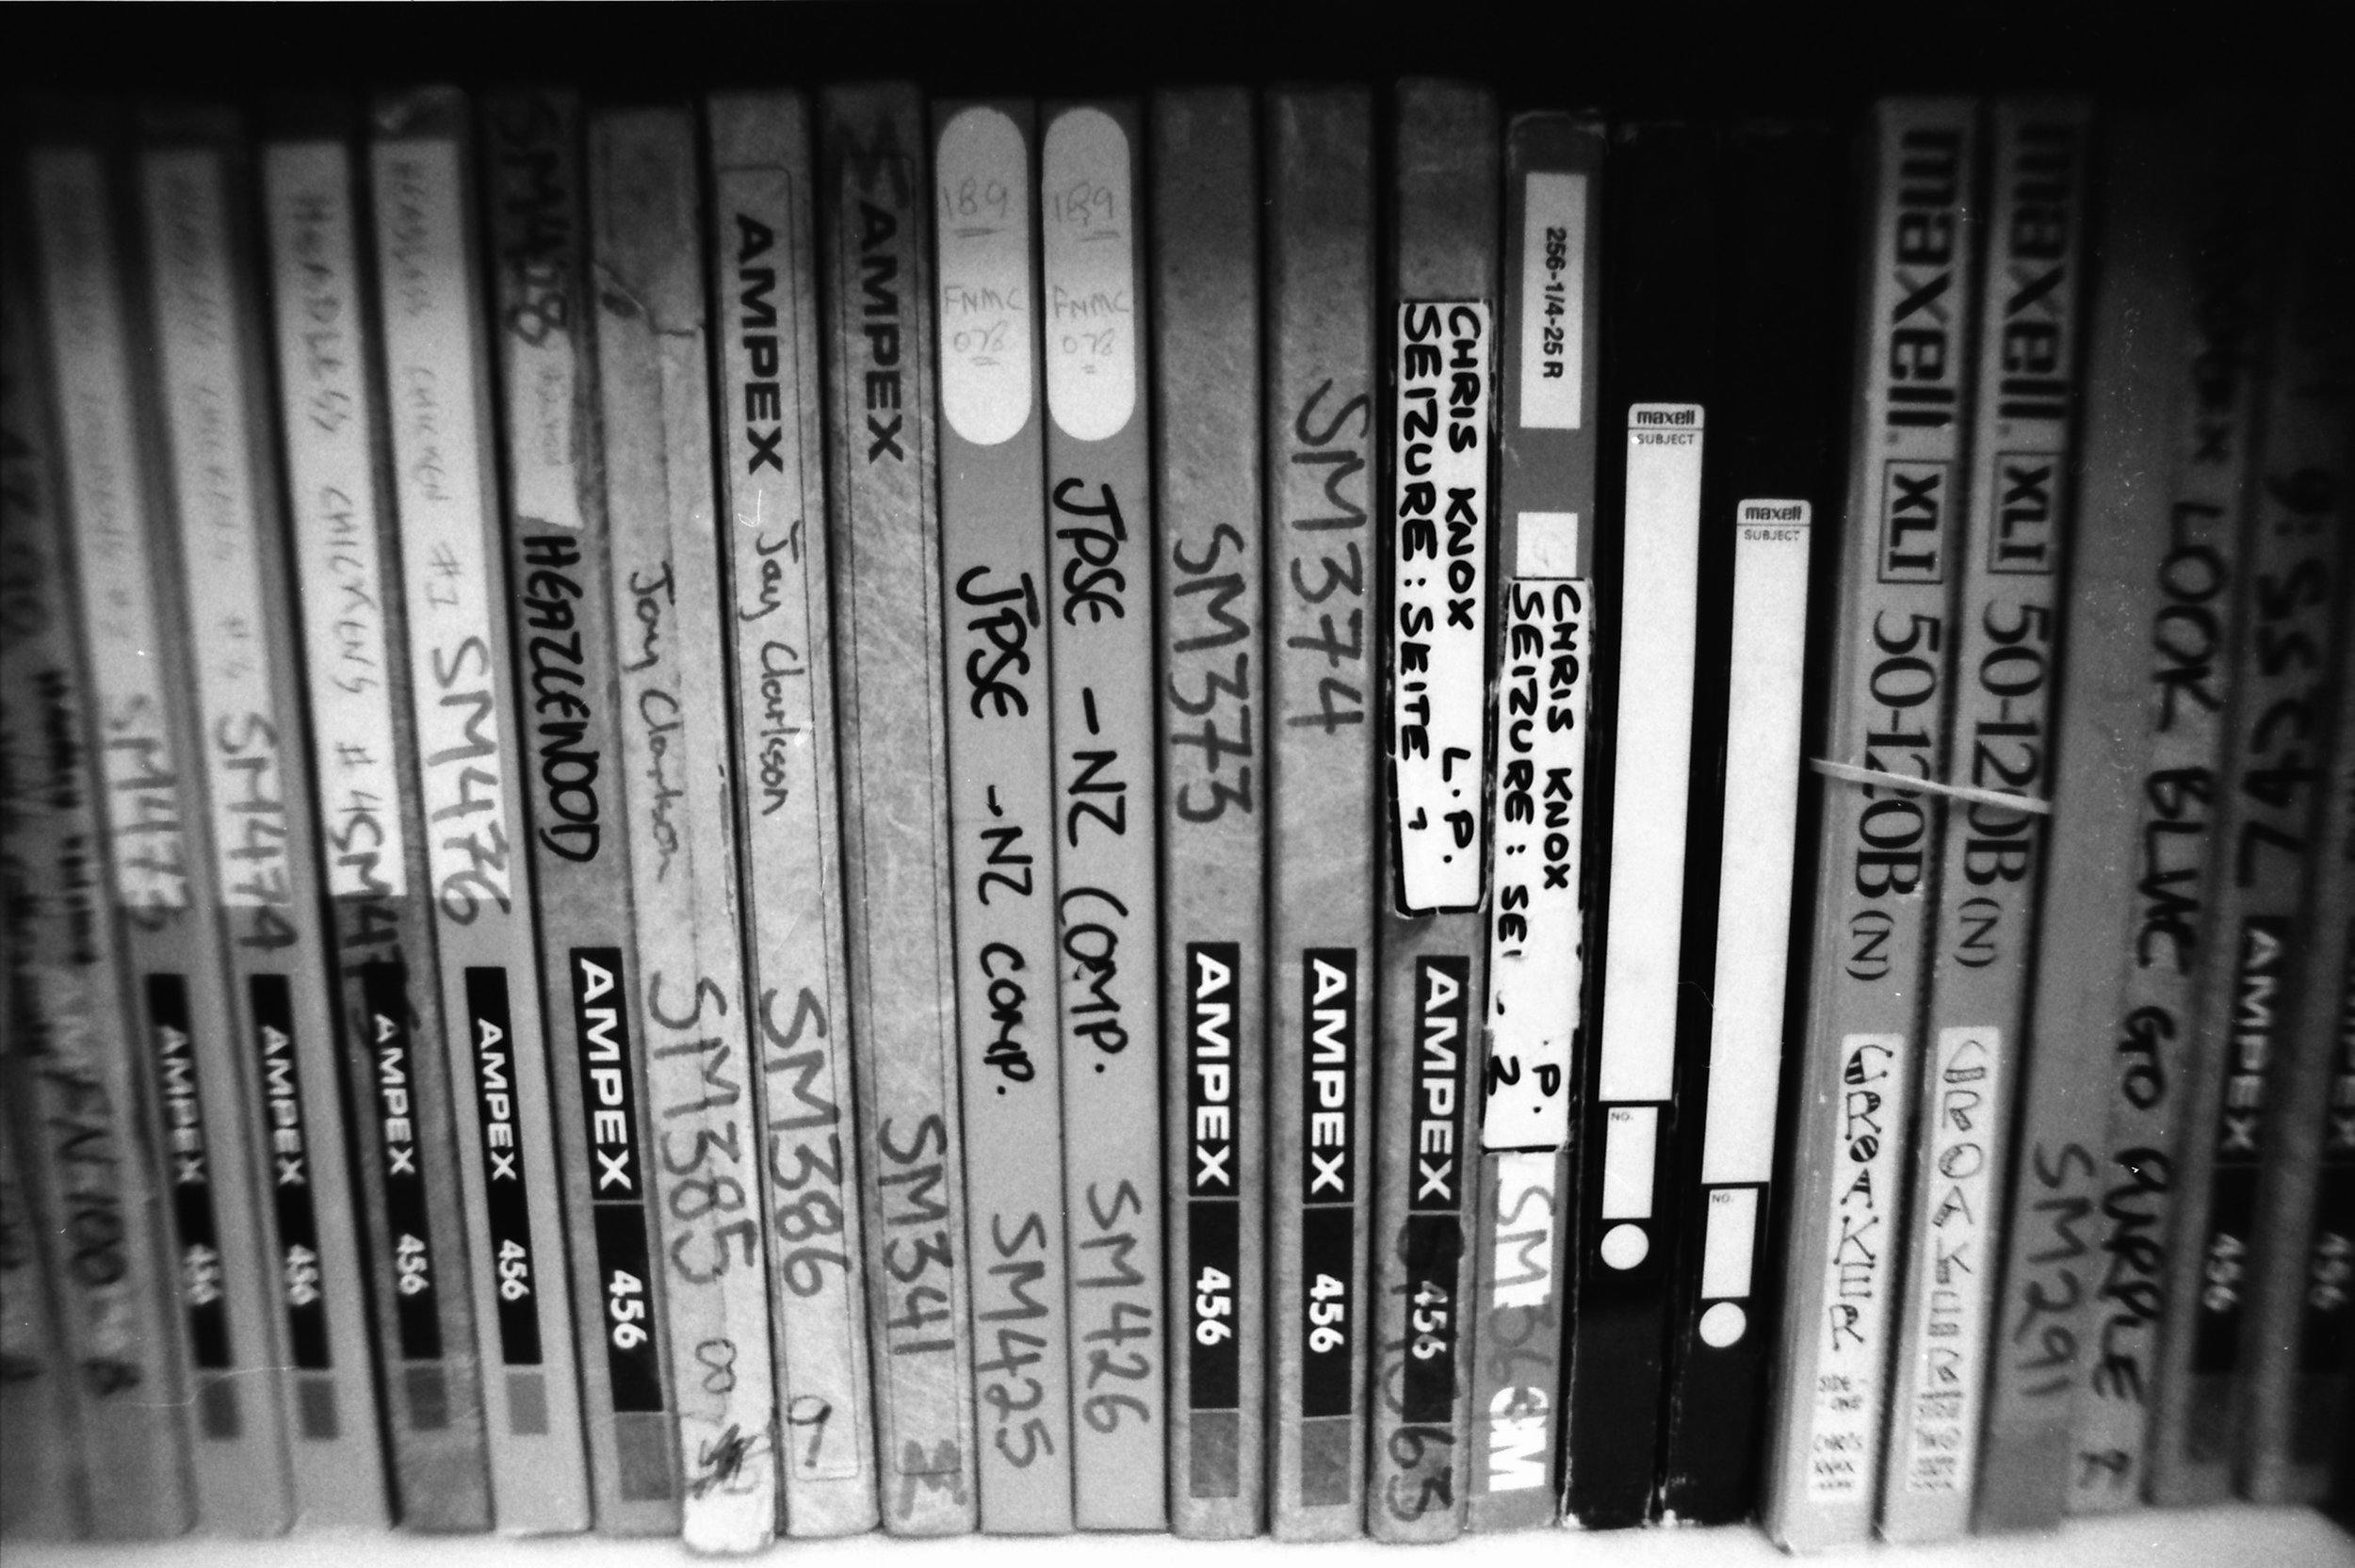 Some of the Flying Nun master tapes - photo taken with b&w Illford Delta 35mm film, Nikon FE2 Nikkor 24mm f2